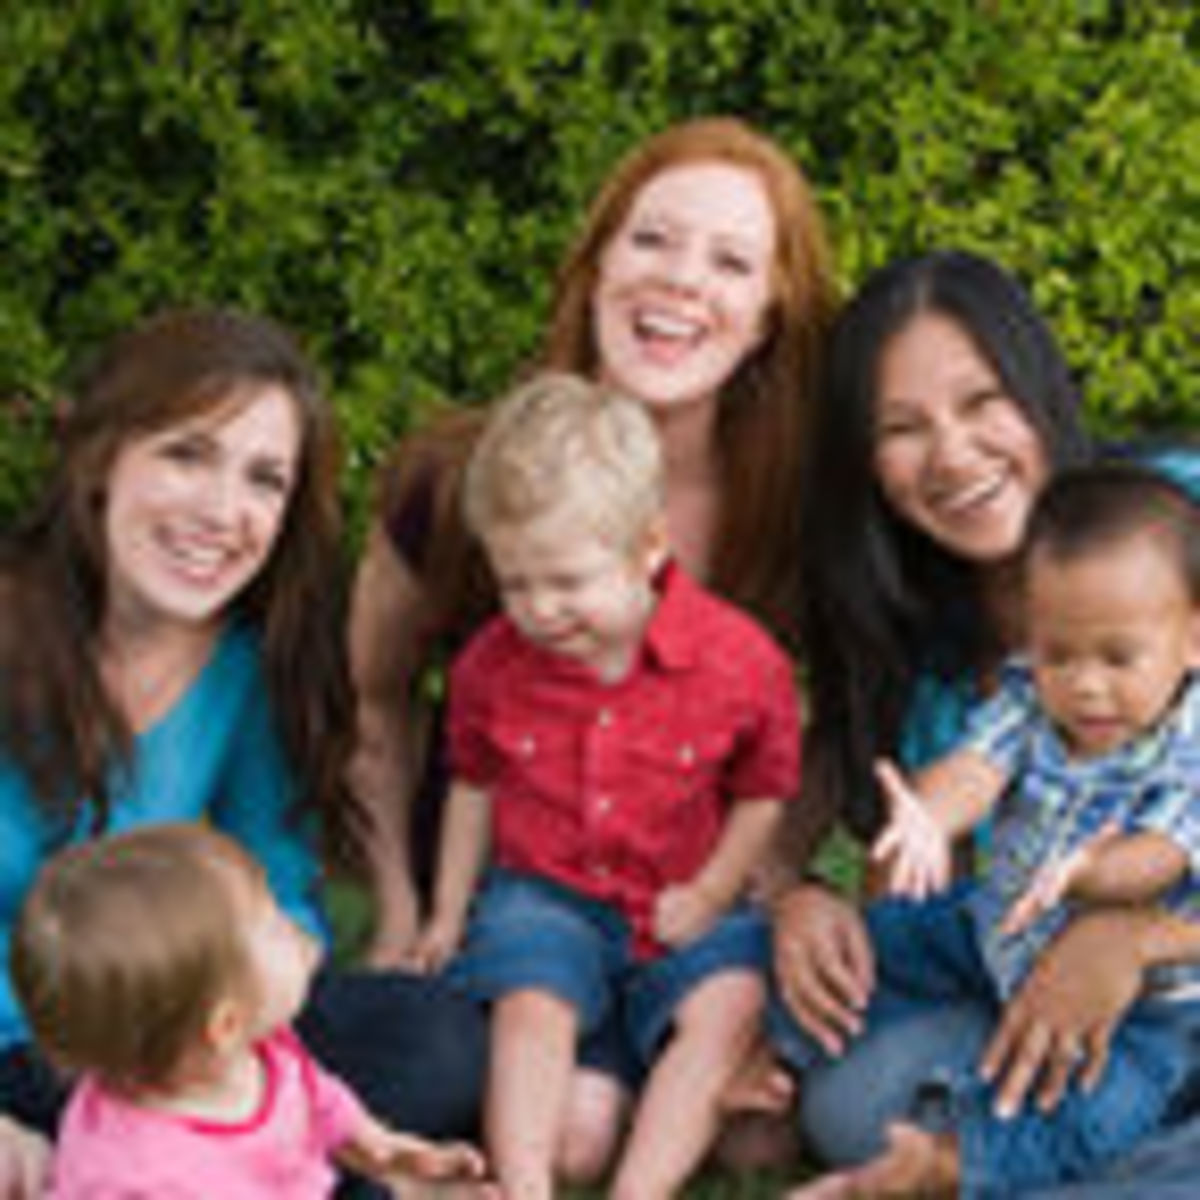 Multiple Parents Legally? | Psychology Today